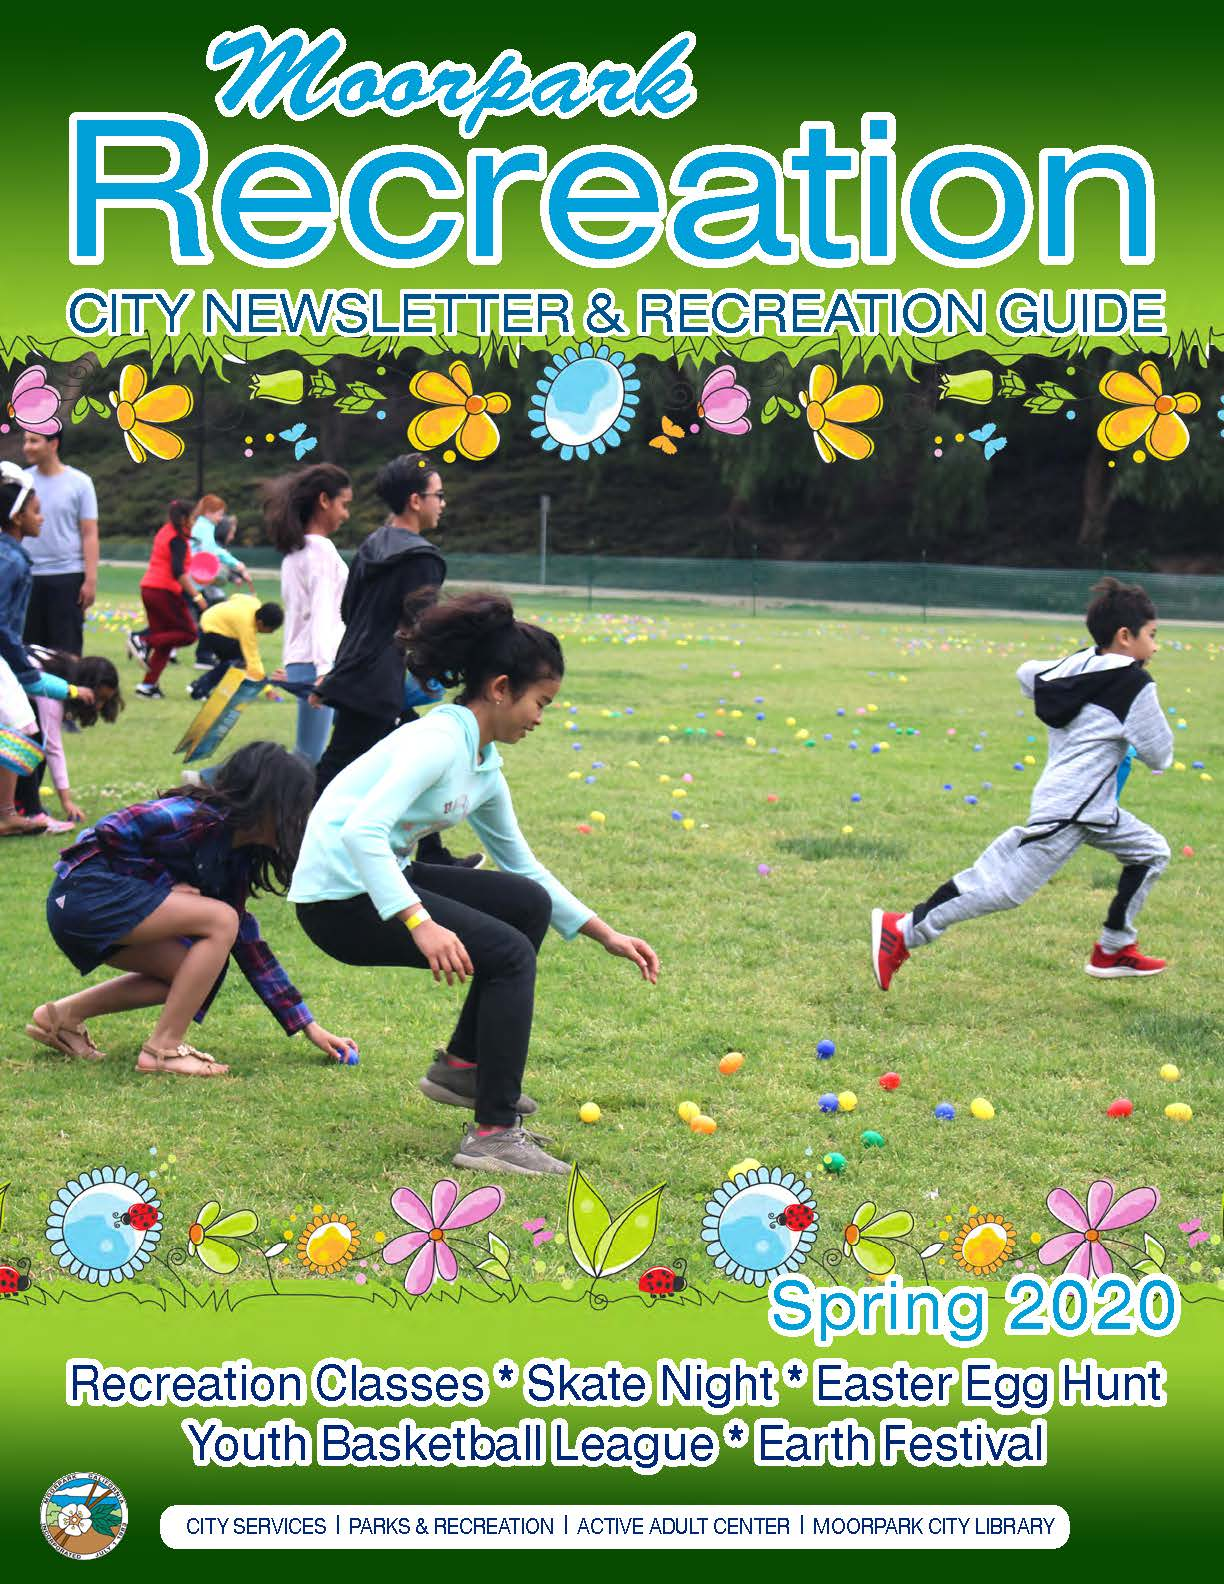 Spring 2020 Recreation Guide Opens in new window